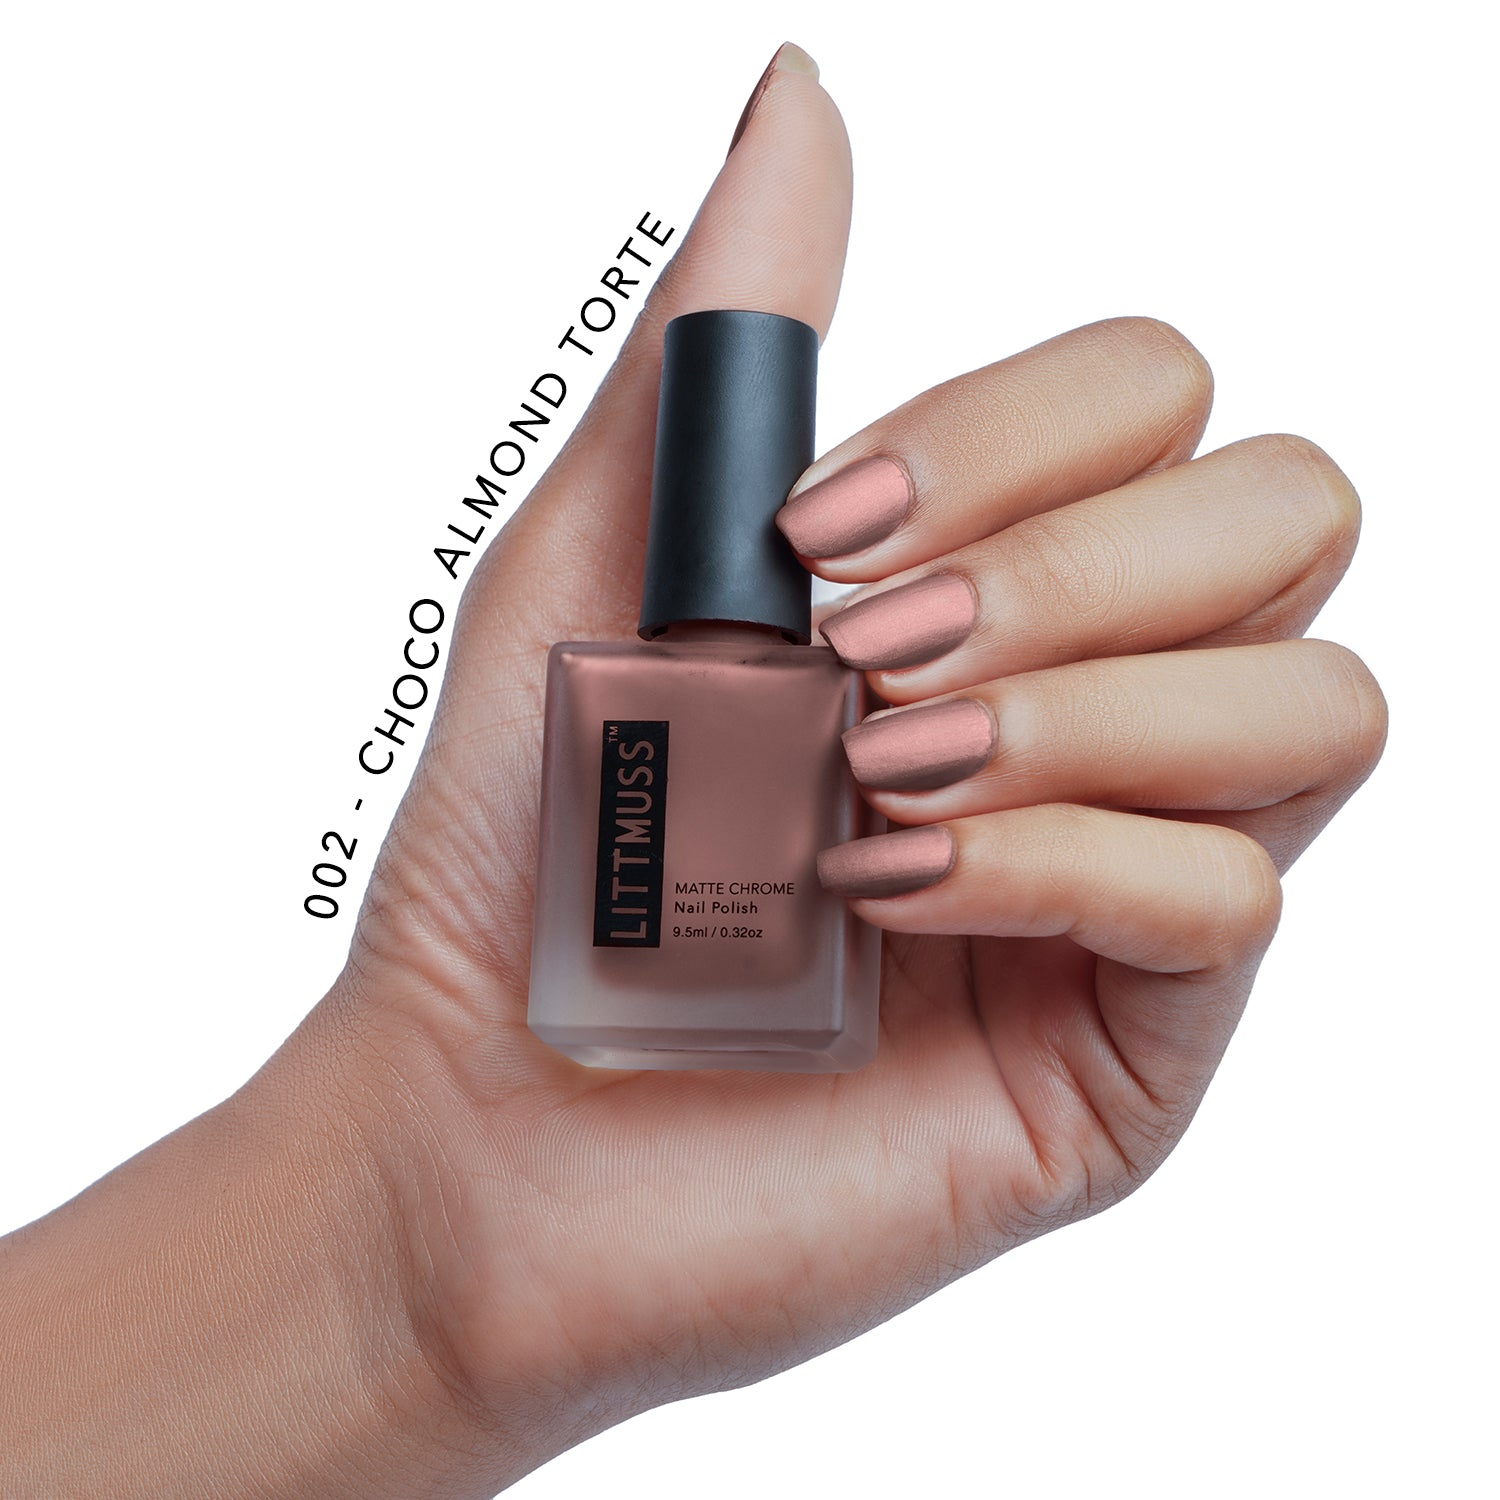 LITTMUSS Matte Chrome Nail Polish Brown Hues Combo